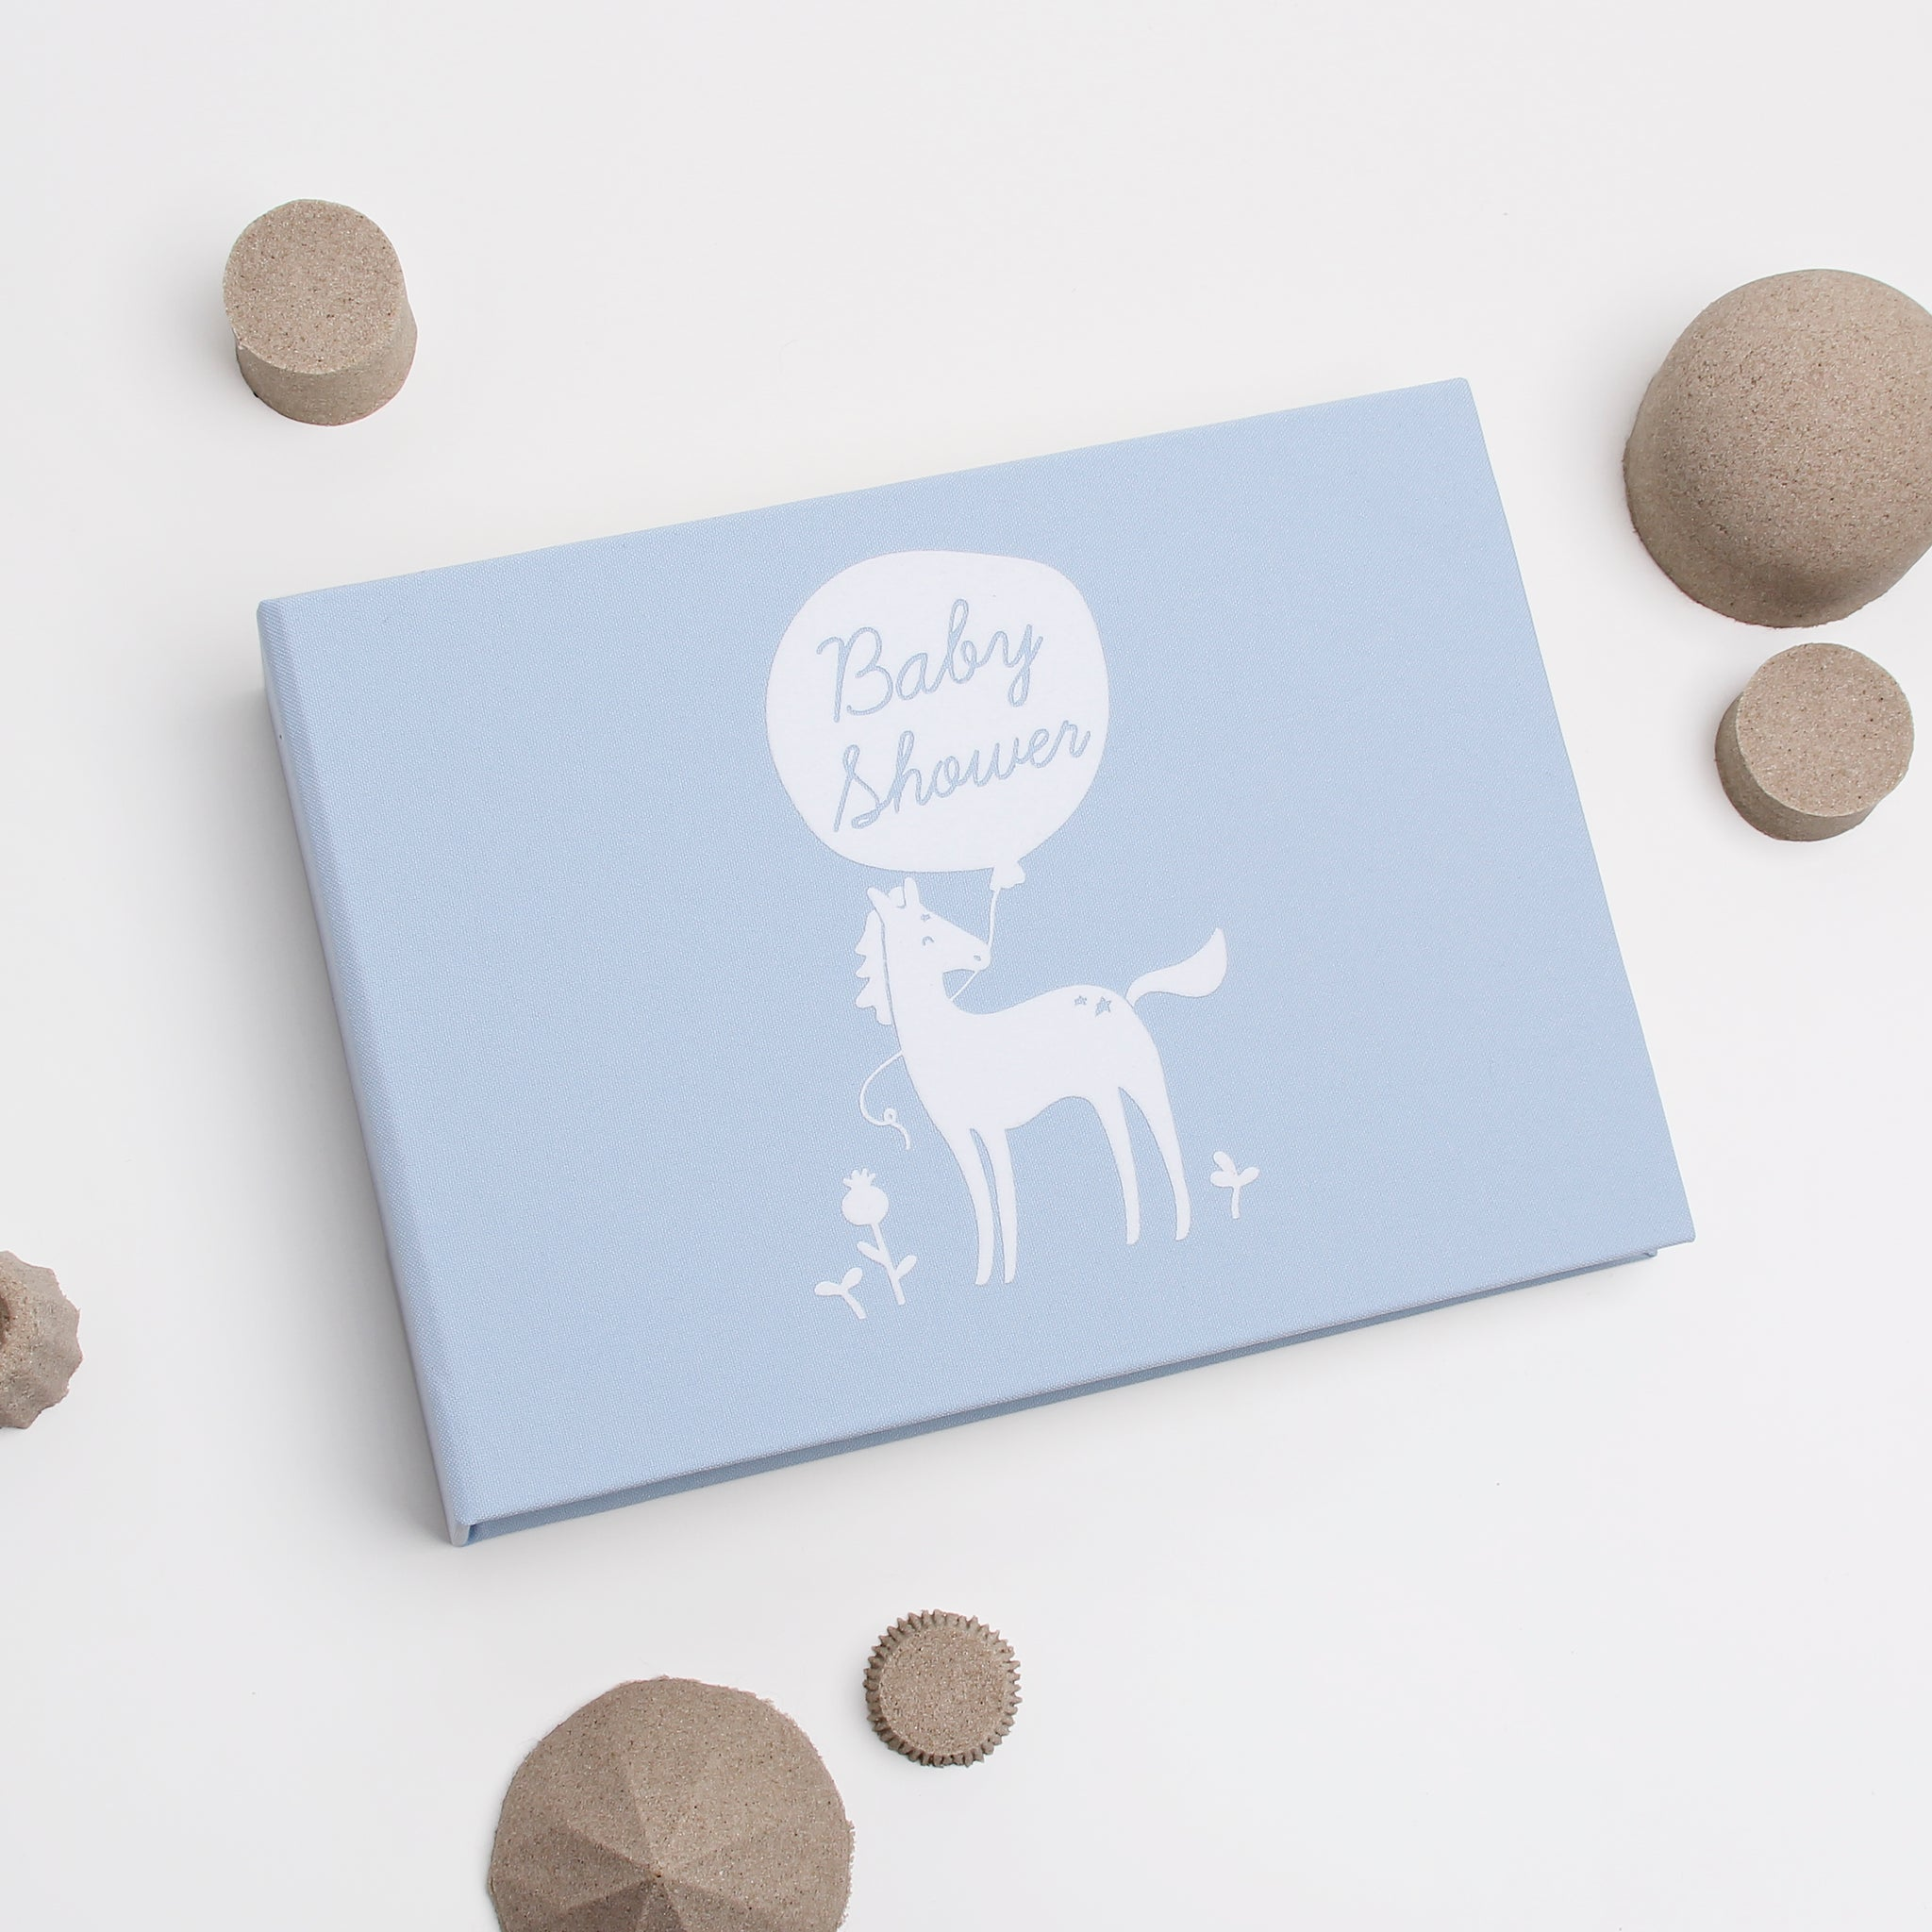 Baby Shower Album,  Light Blue with Little Horse instax picture album, Kids Album - by Liumy - Liumy